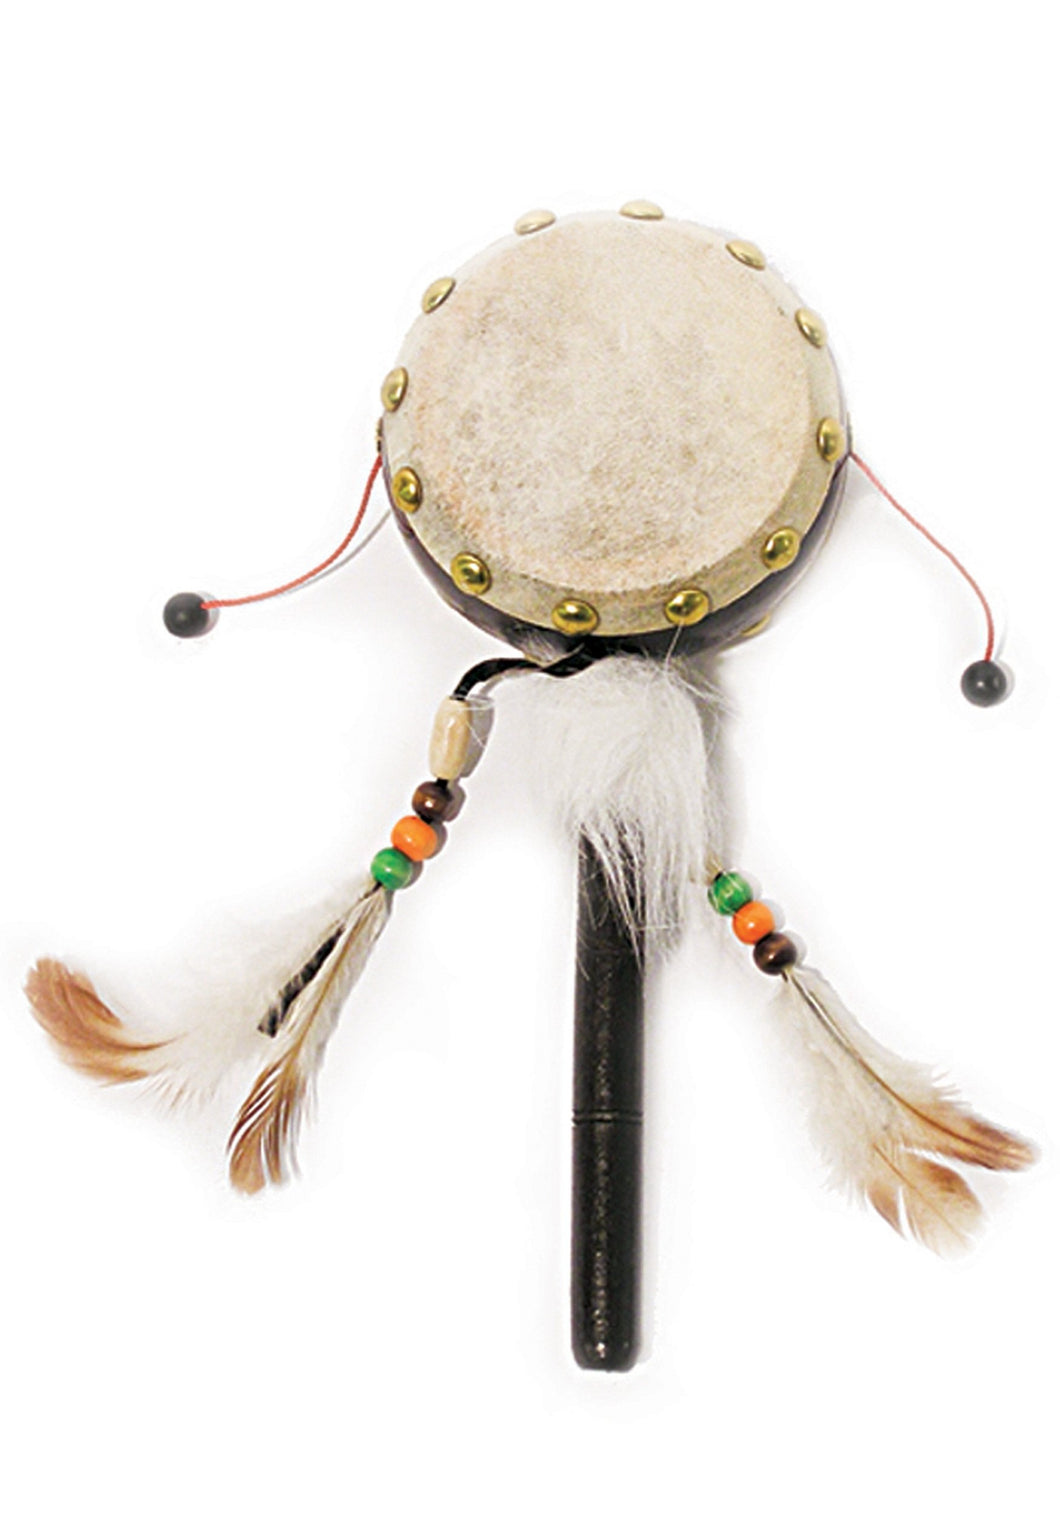 Indian Drum - ST